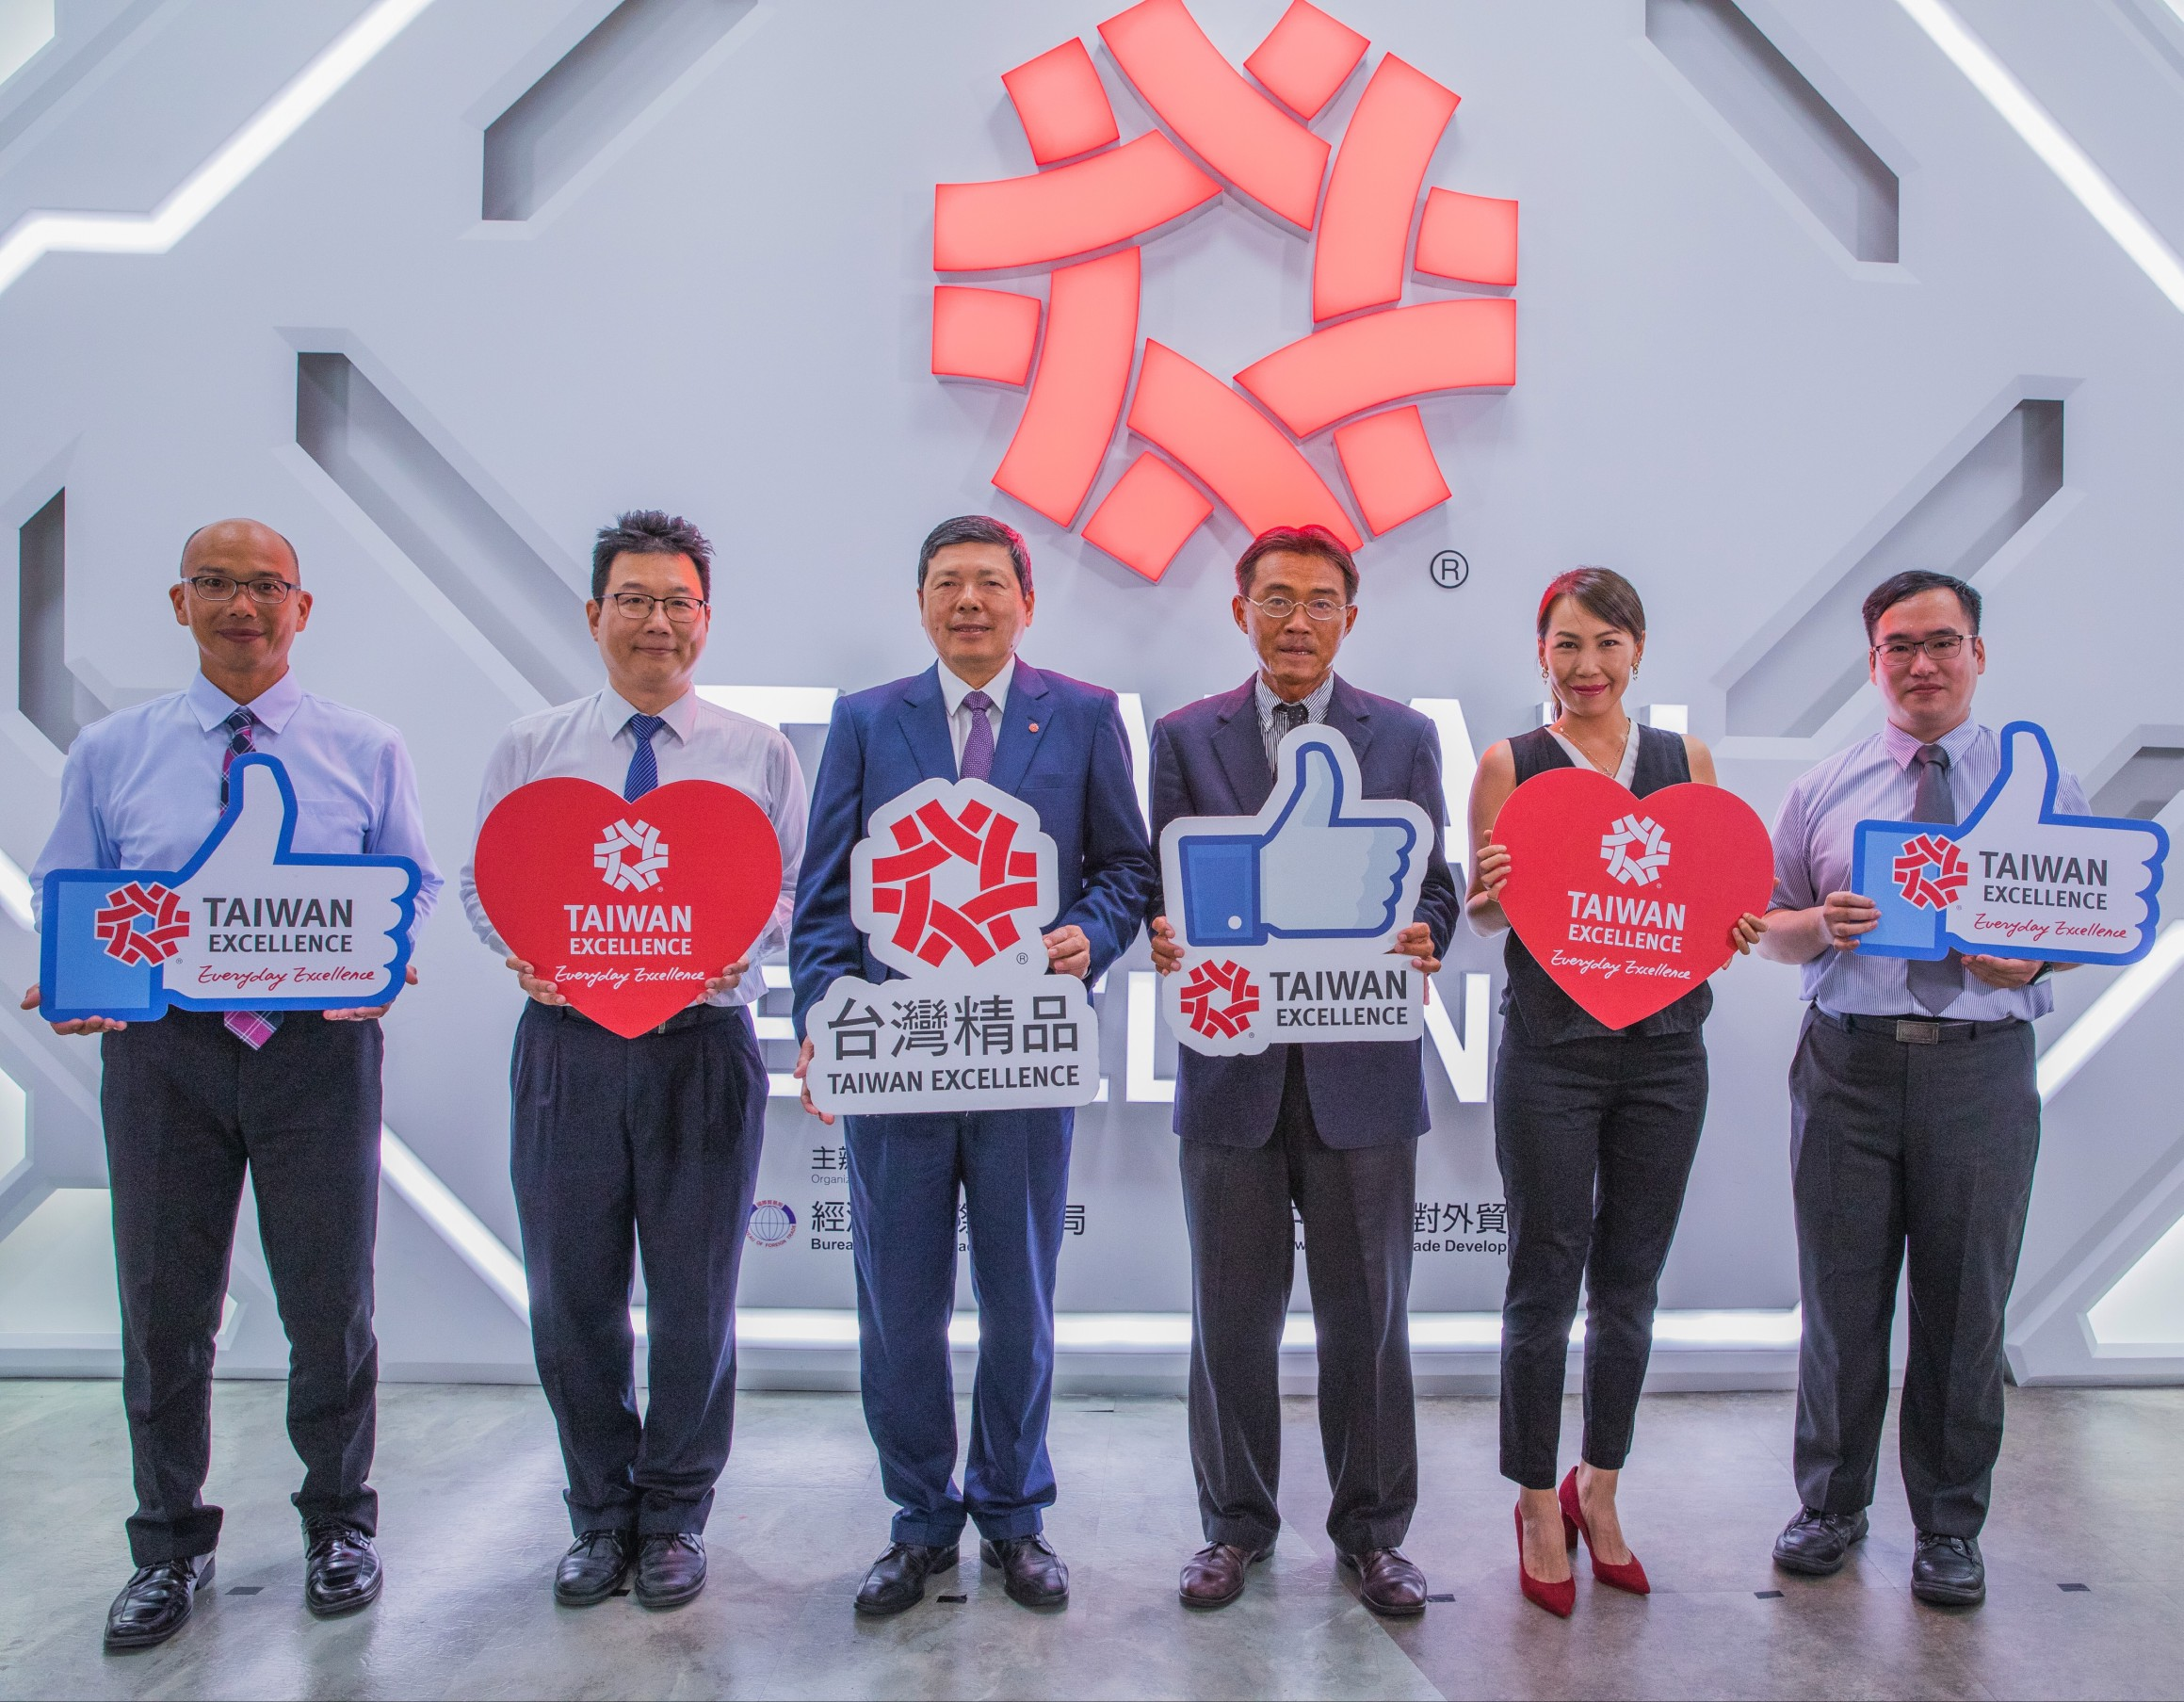 Taiwan Excellence Award-Winning Companiesto   Showcase Future PCB Innovations at an Online Press Conference